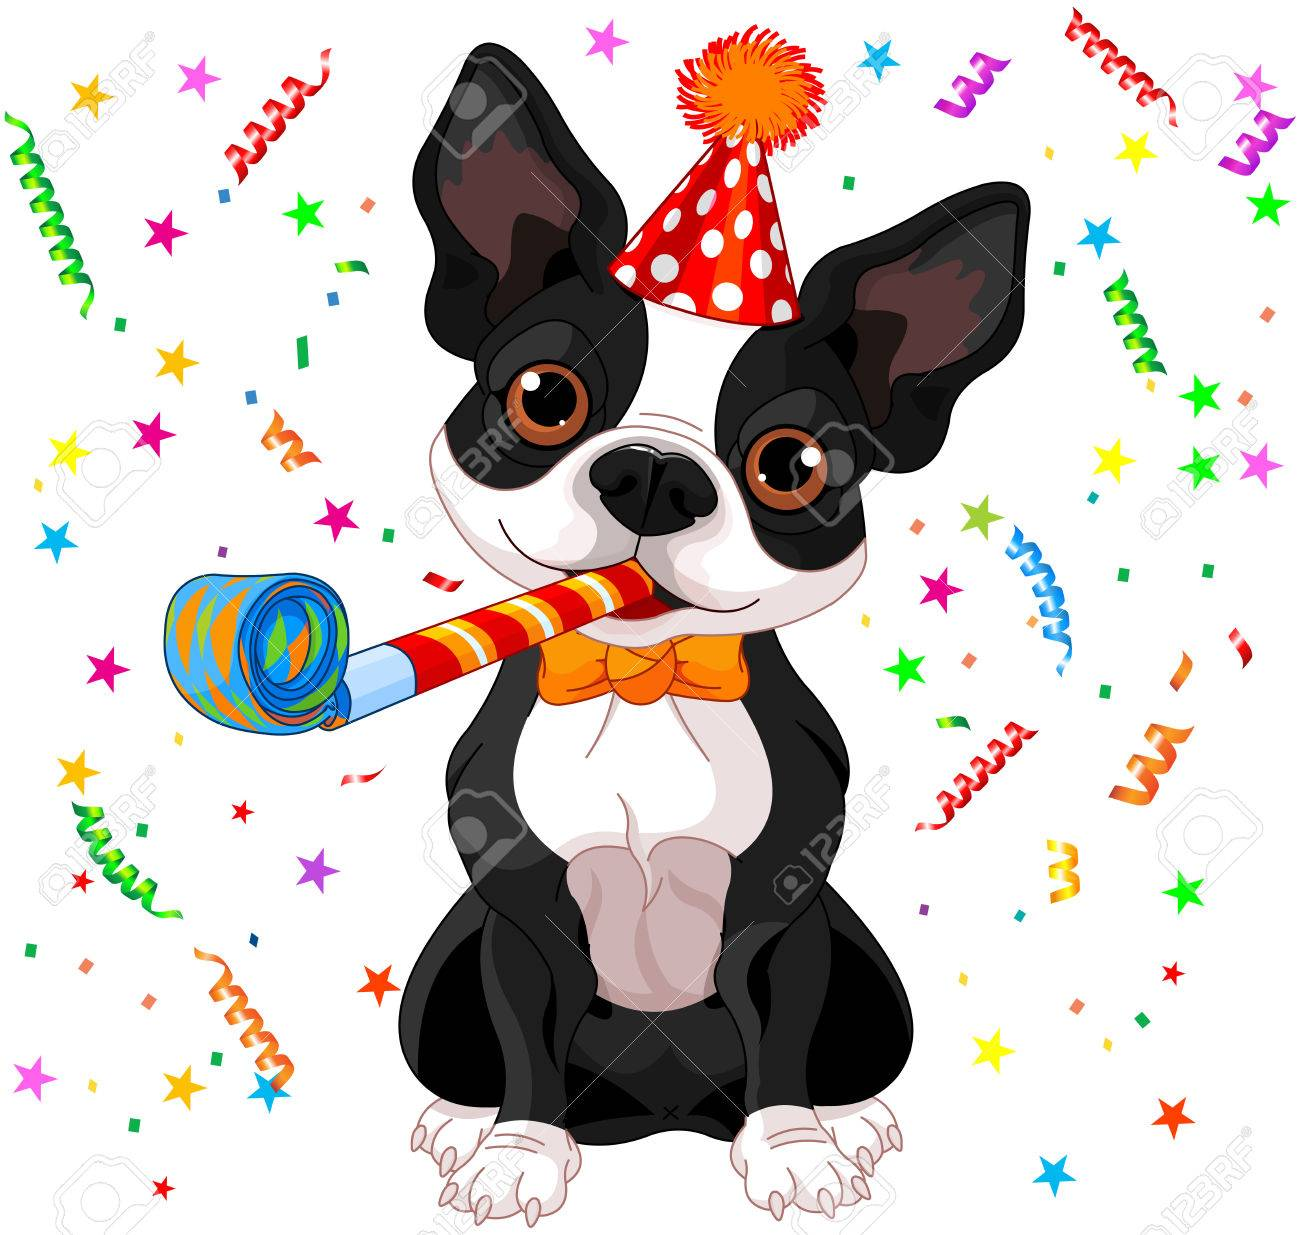 Travail au troupeau - Page 11 35588778-illustration-of-cute-boston-terrier-celebrating